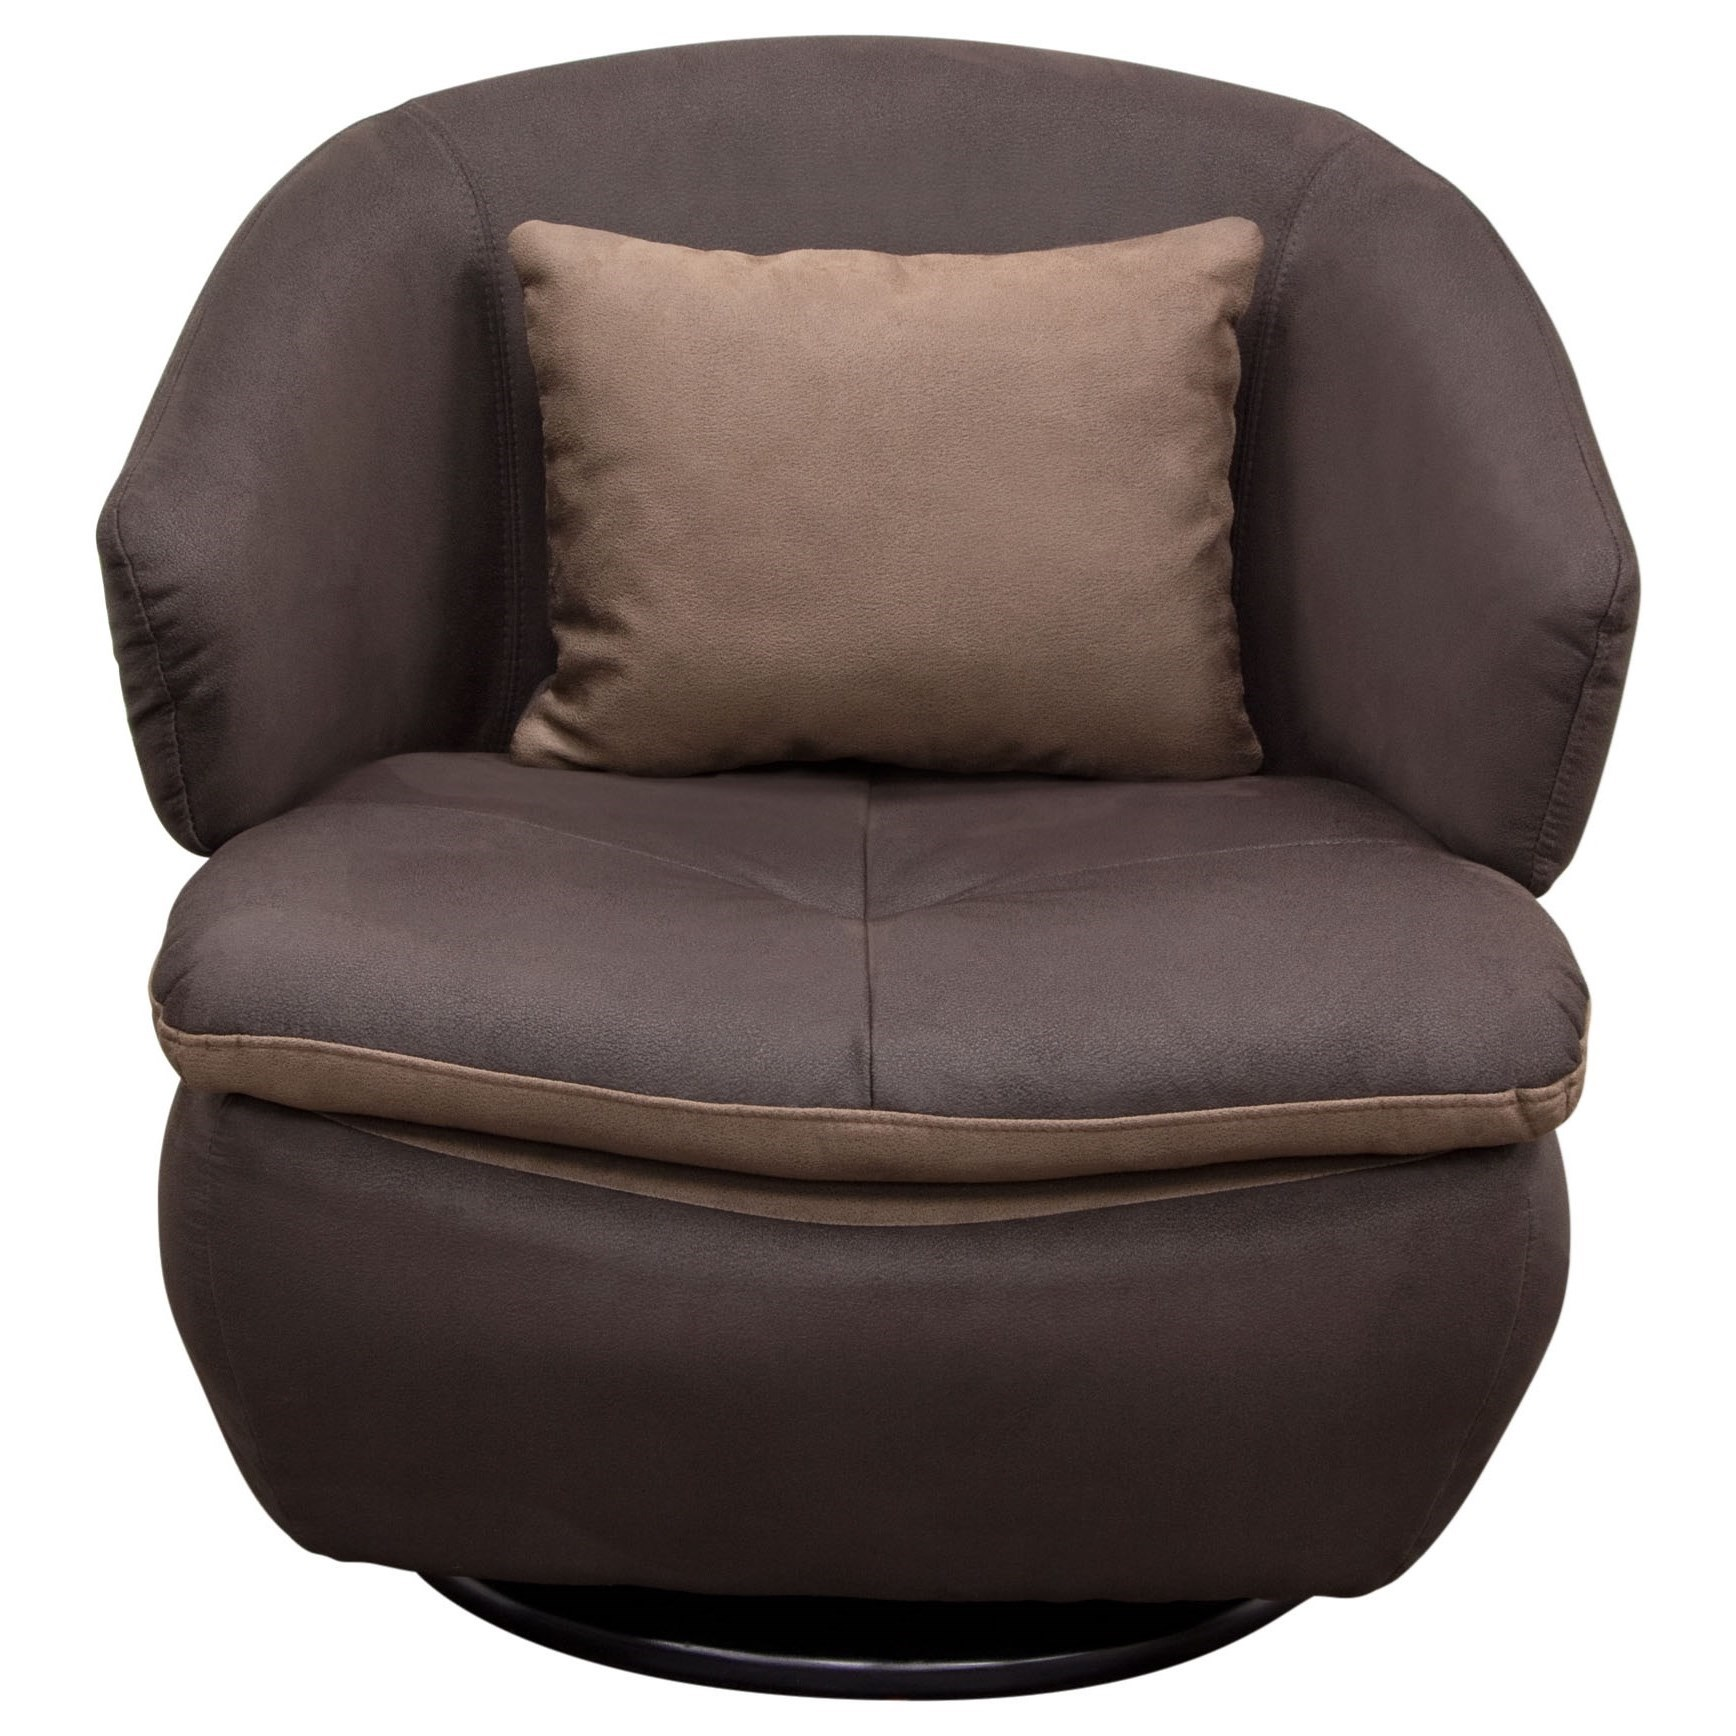 Diamond Sofa Accent Chairs Rio Swivel Chair - Item Number: RIOCHBR